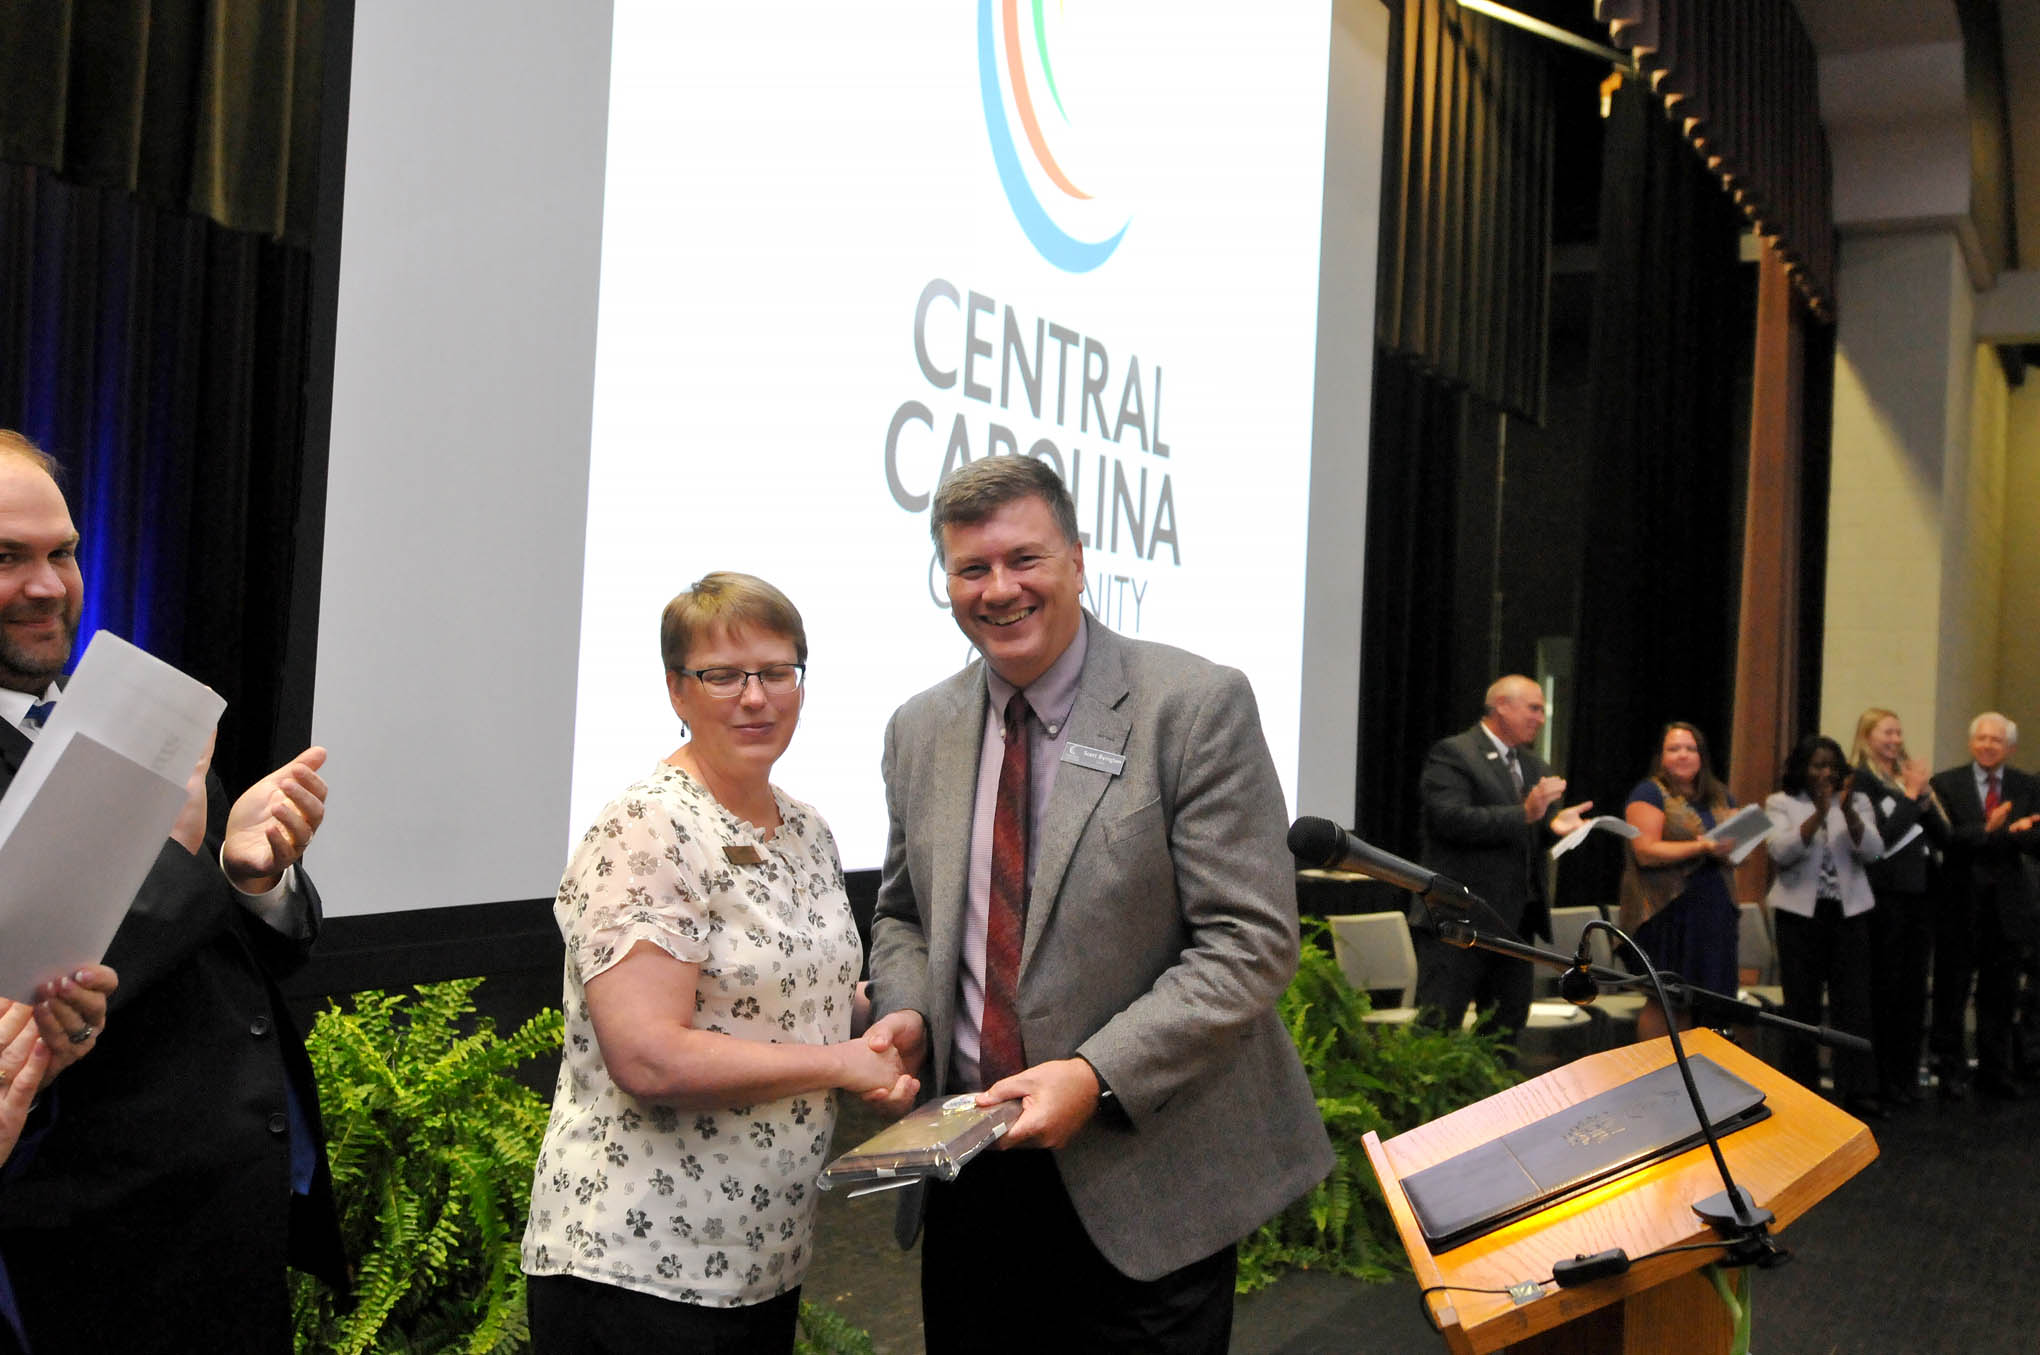 Click to enlarge,  Central Carolina Community College Dean of Arts, Sciences and Advising Scott Byington (right) receives the Staff Member of the Year award from 2018 recipient and CCCC Student Learning Coordinator Angela Crisp-Sears (left) during the Convocation and Installation of Dr. Lisa M. Chapman as Sixth President of CCCC on Sept. 26.